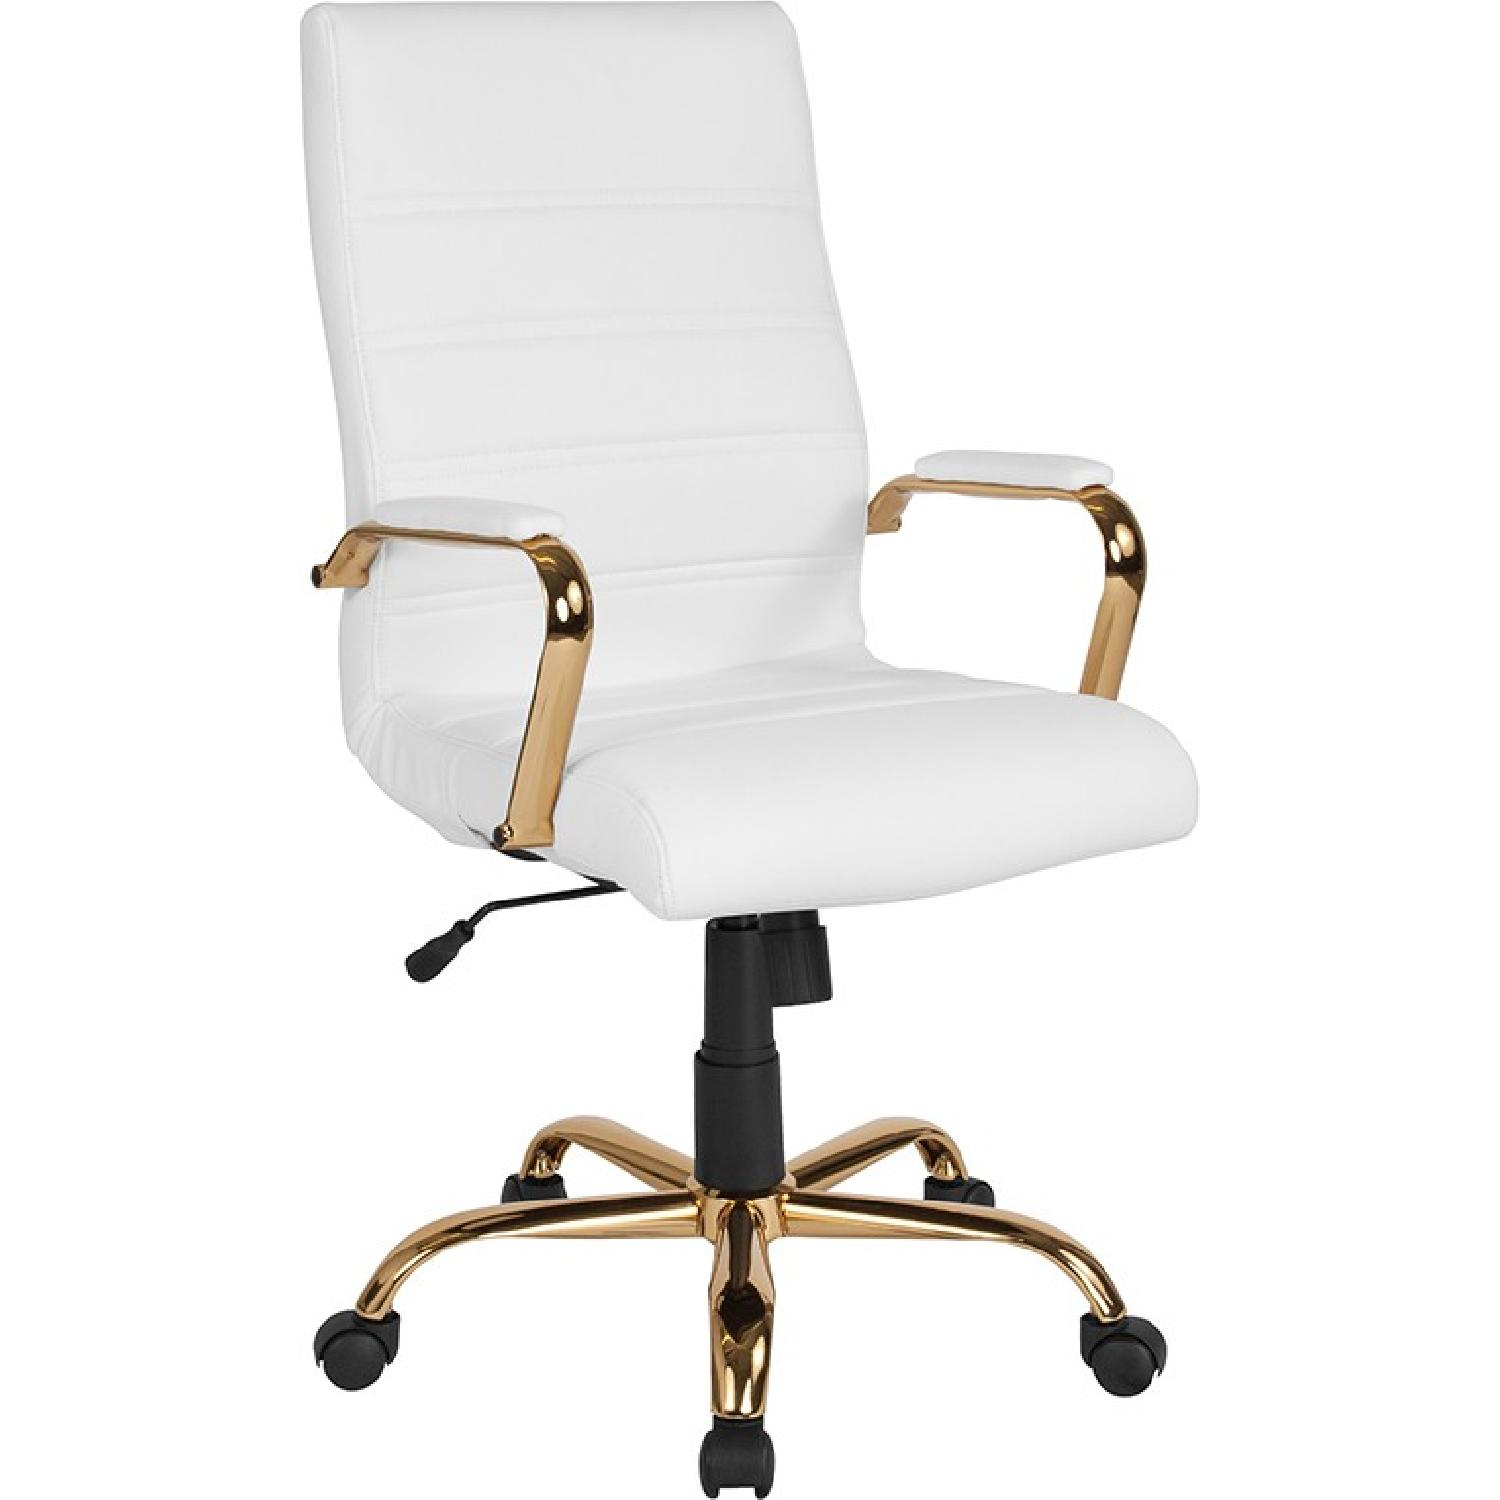 High Back White Leather Office Chair w/ Gold Frame